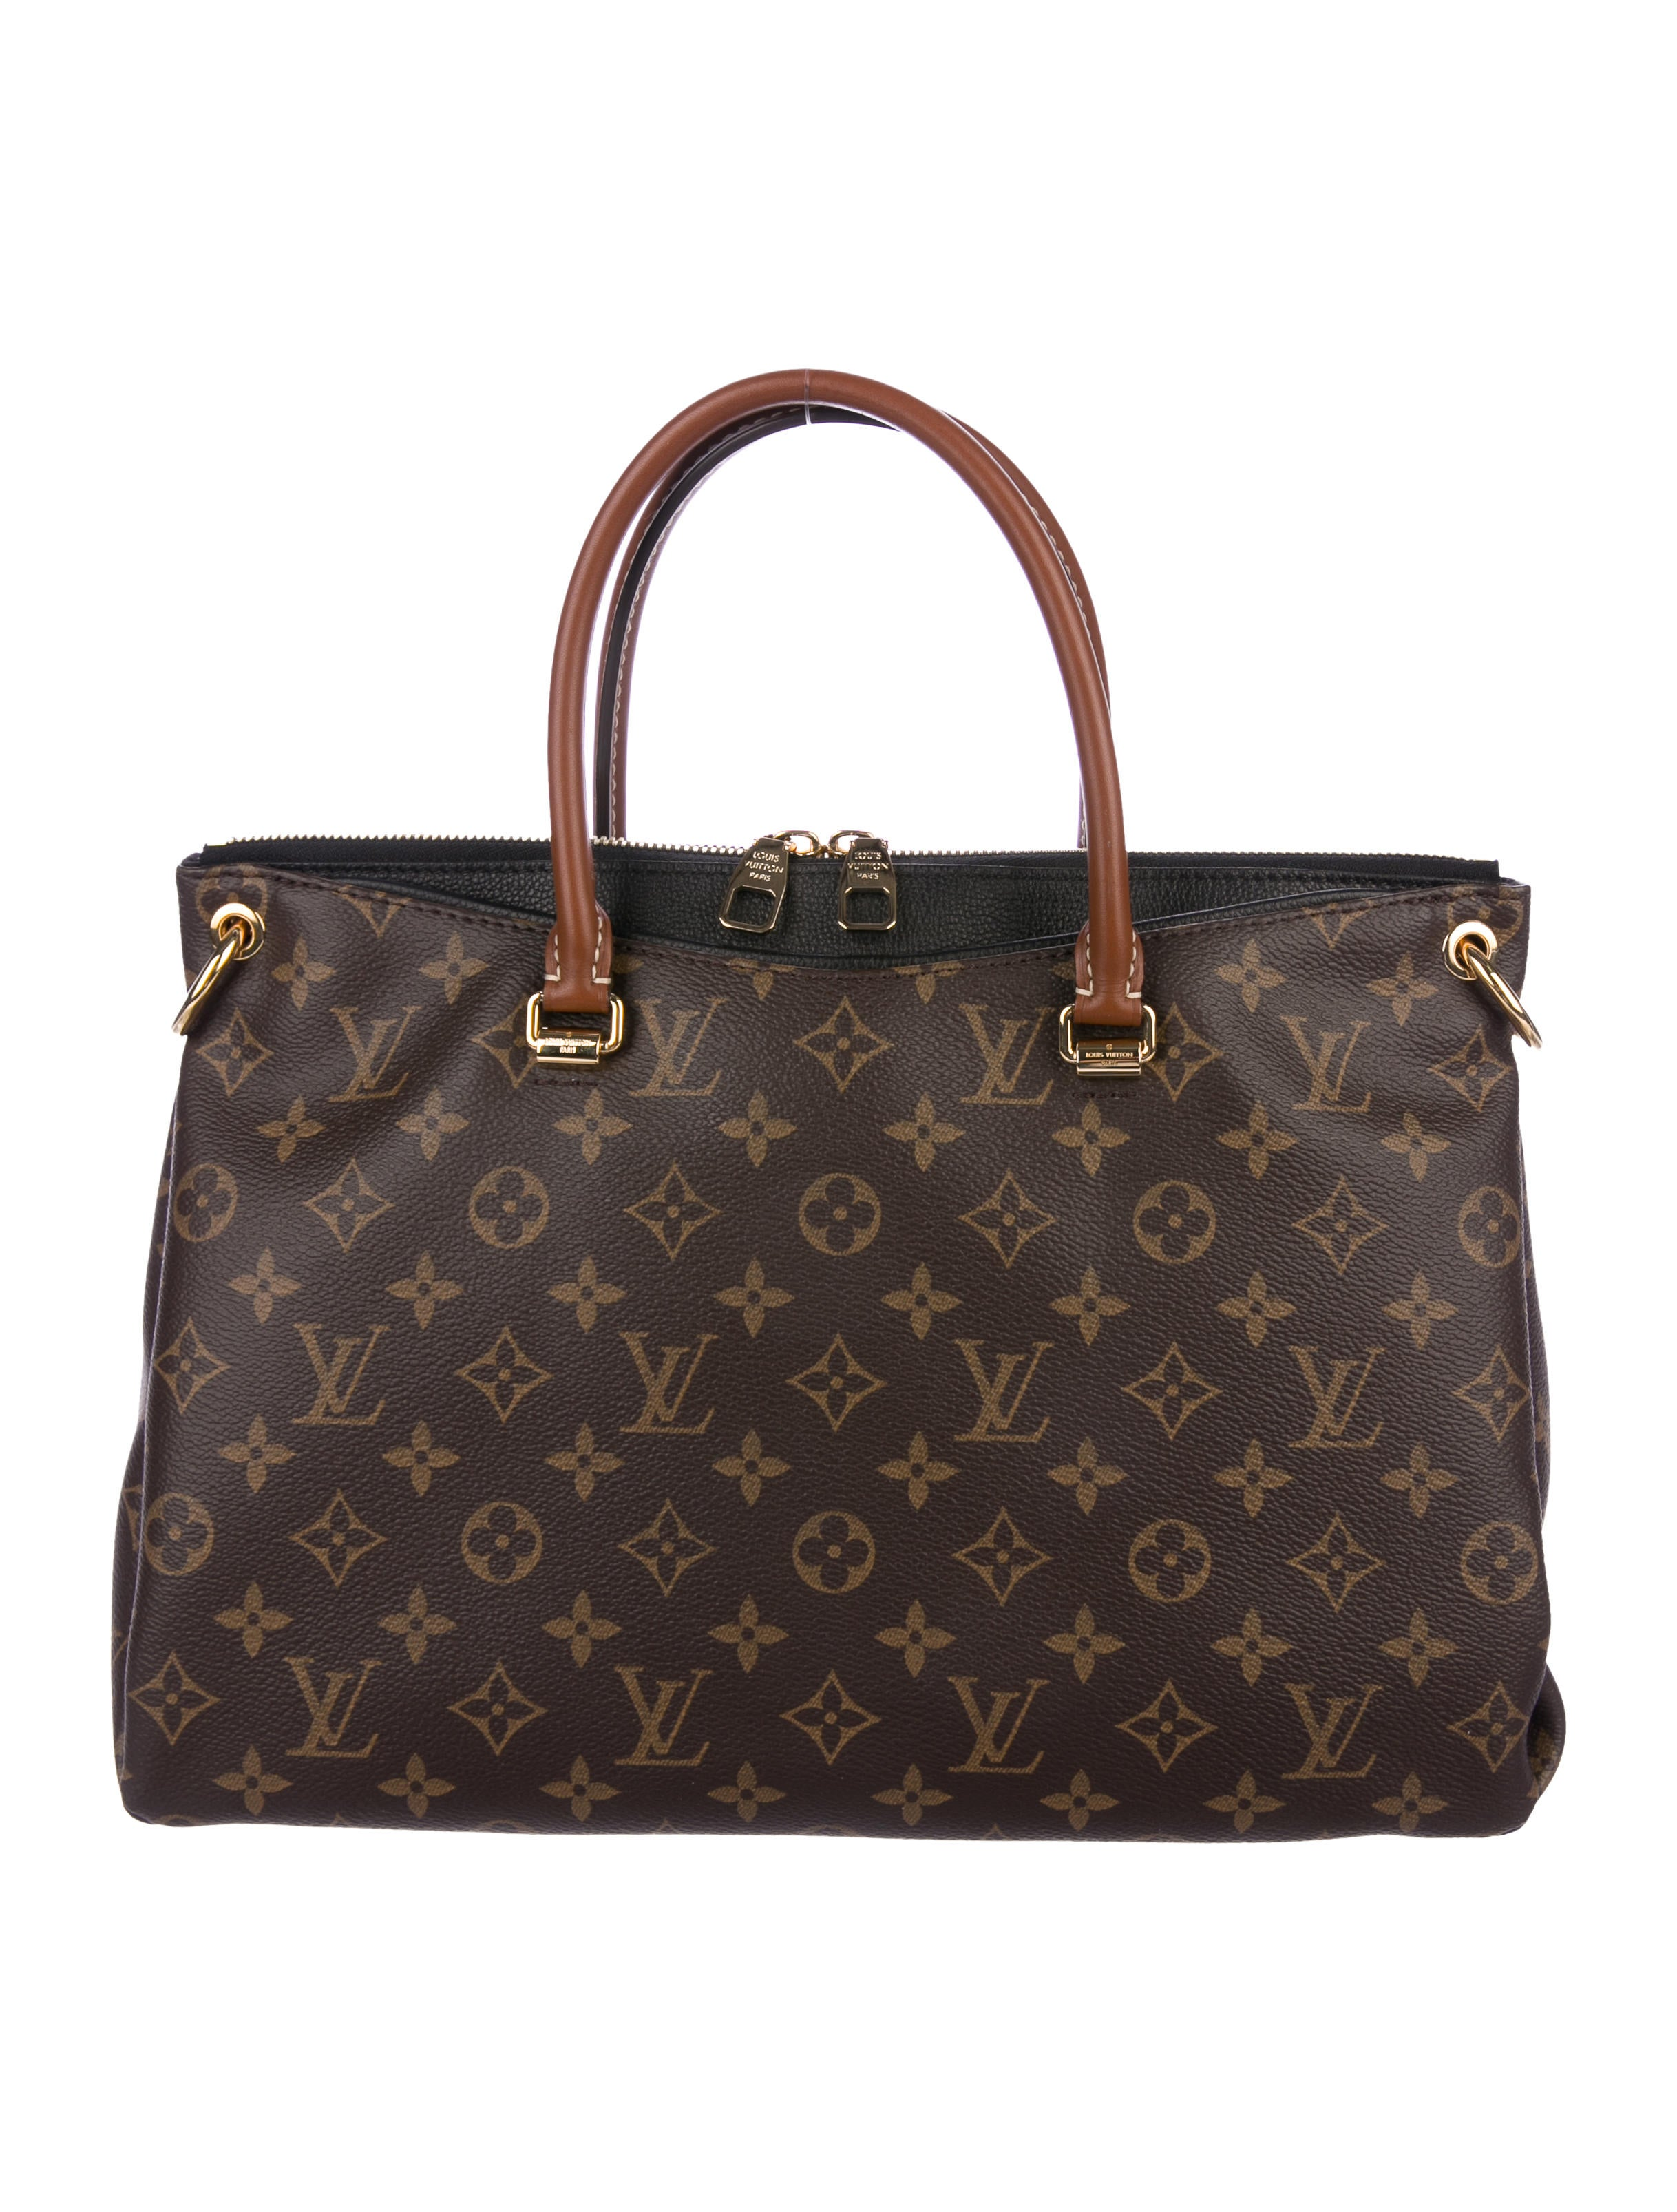 Louis Vuitton Monogram Pallas Tote - Handbags - LOU210958  16d5881d7